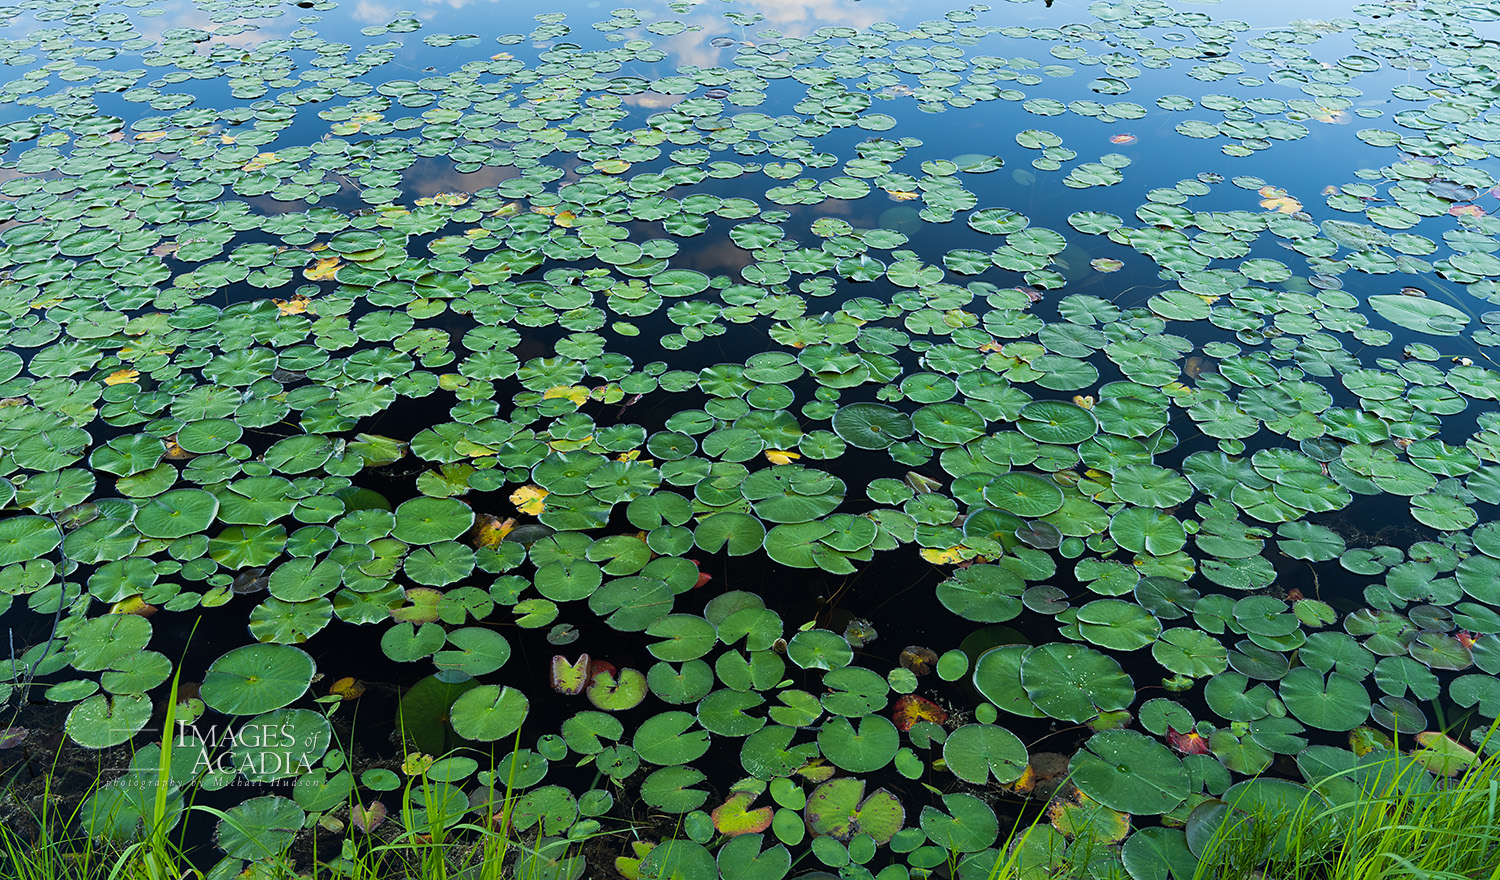 Pond life in the Witch Hole Pond area of Acadia National Park